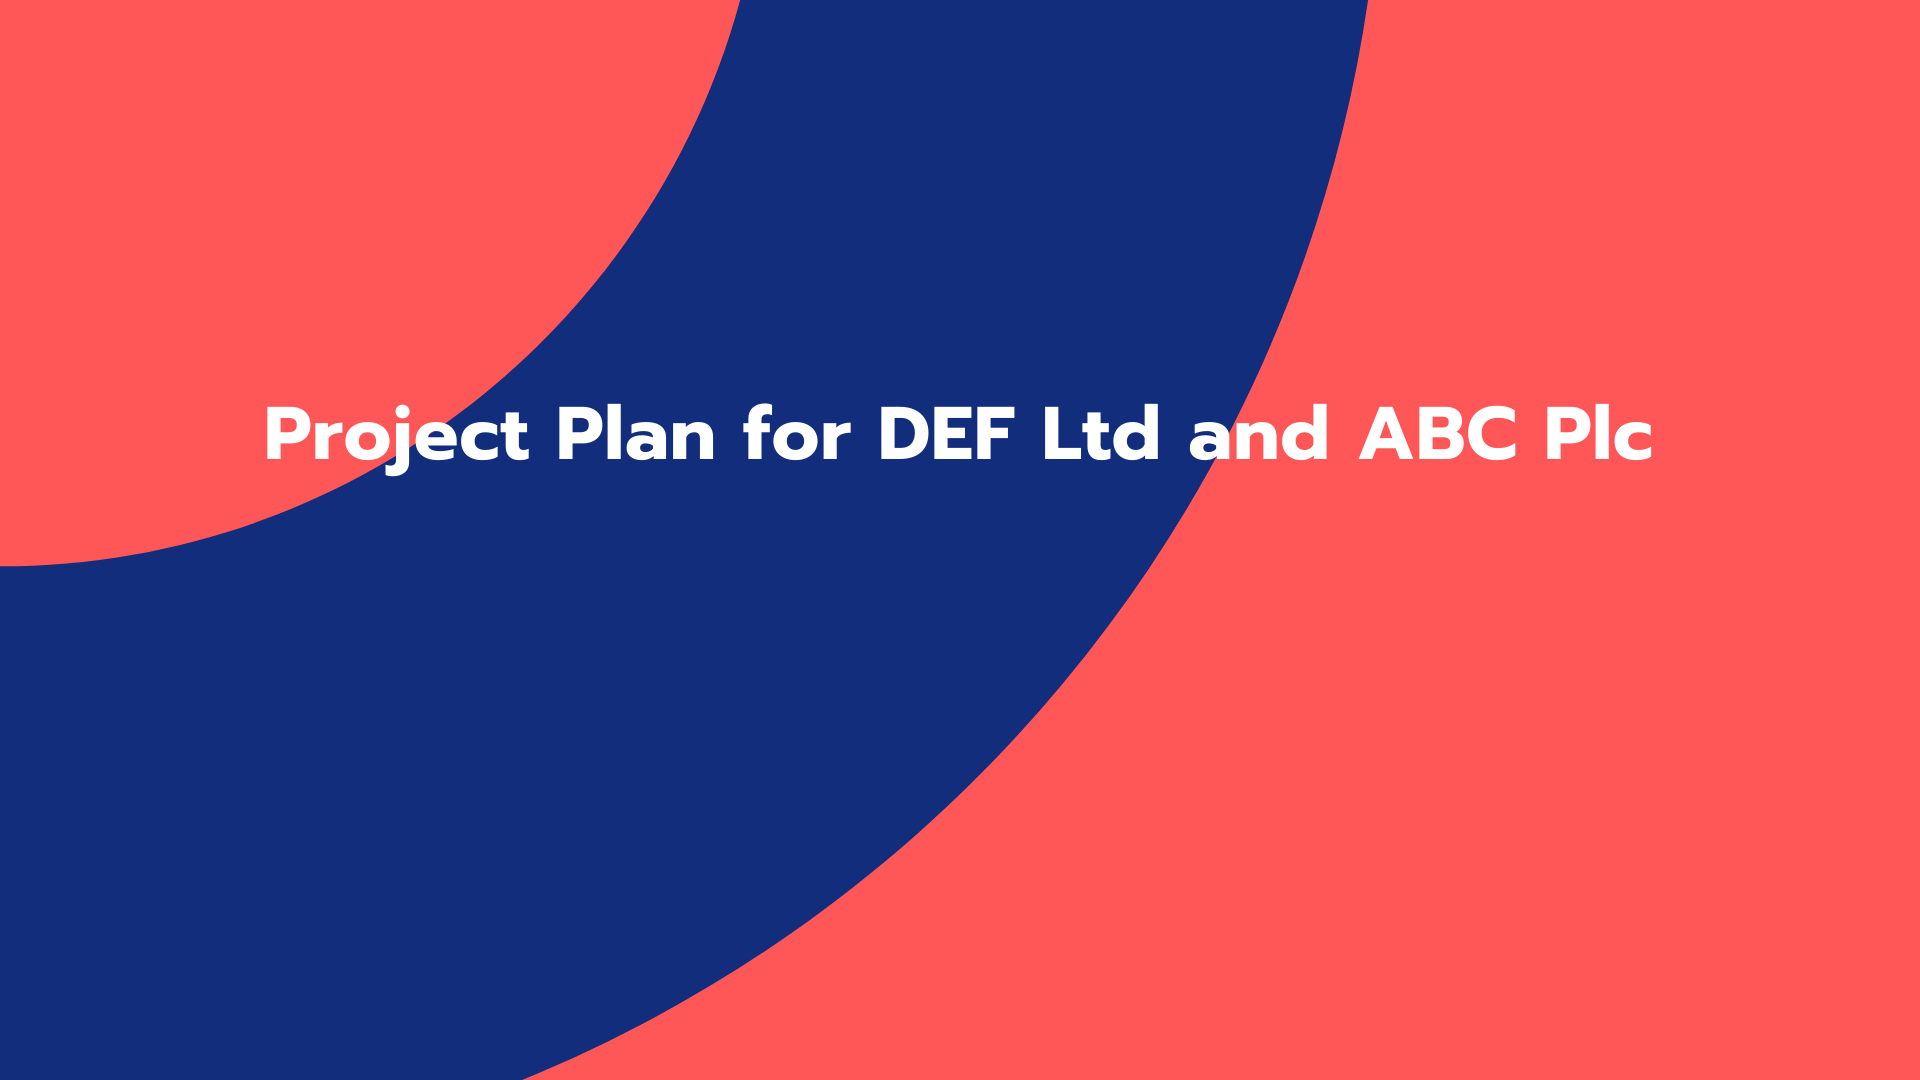 Project Plan for DEF Ltd and ABC Plc